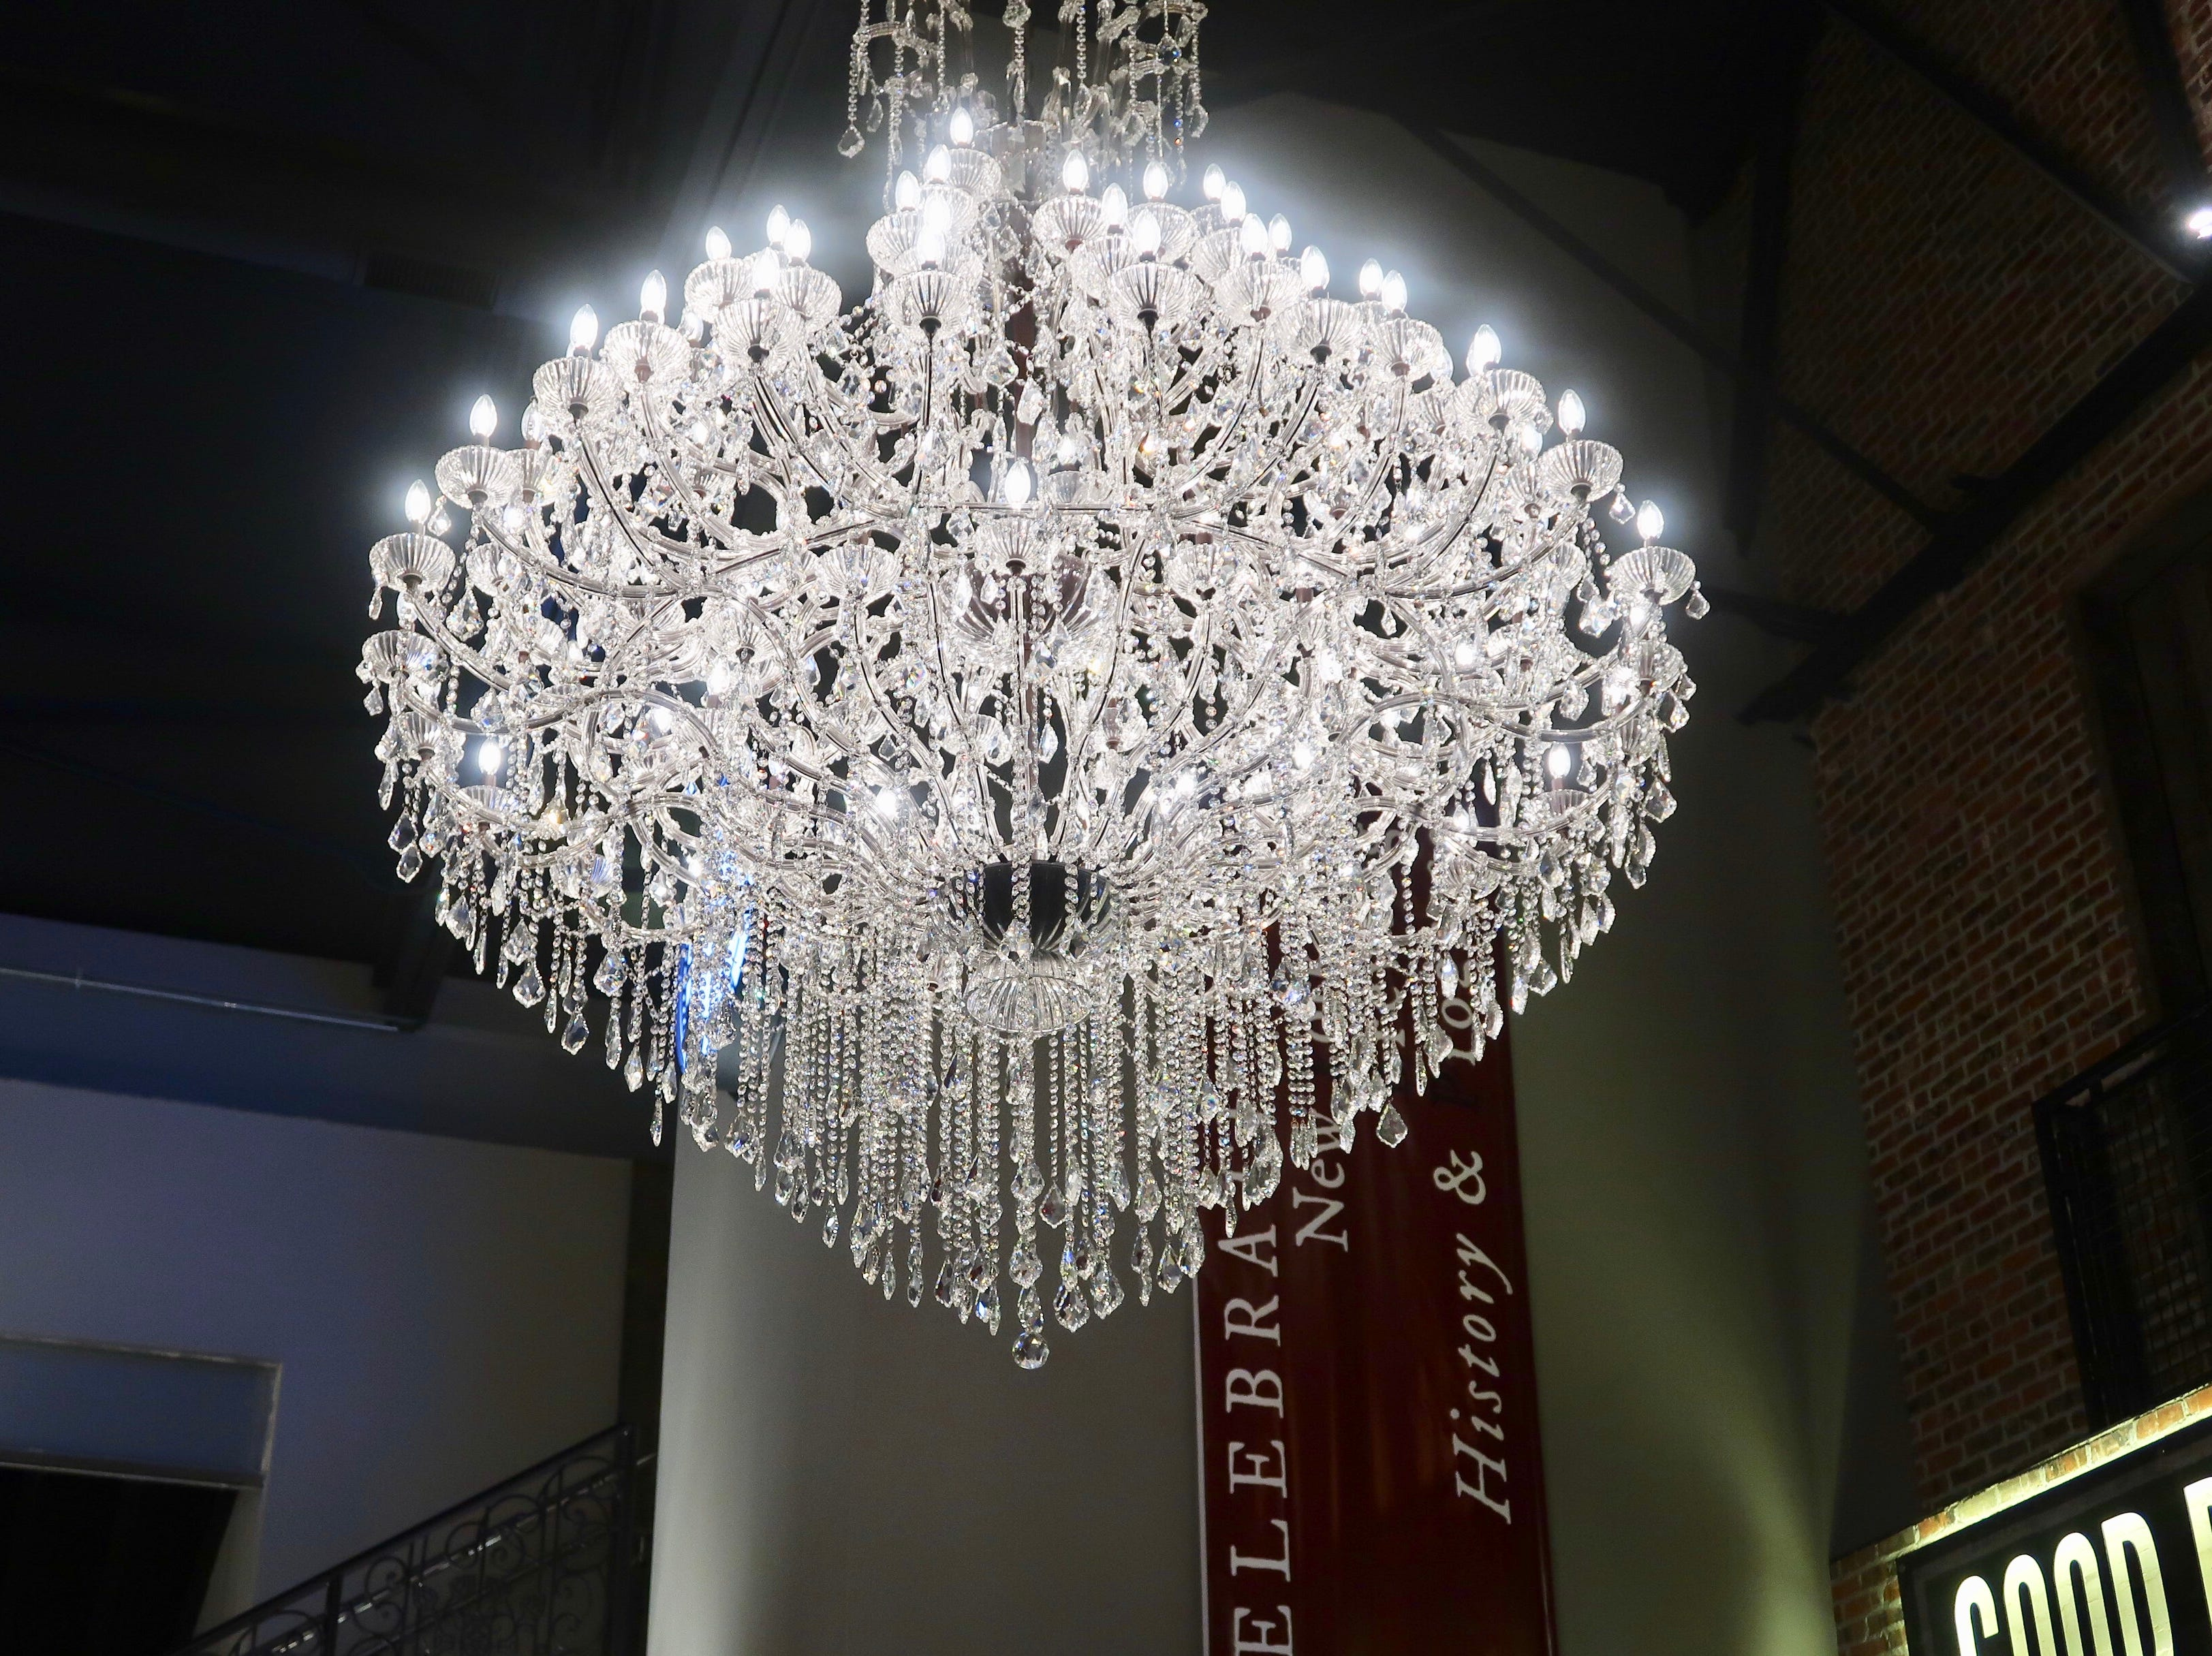 Massive chandeliers at the New York Beer Project in Victor.